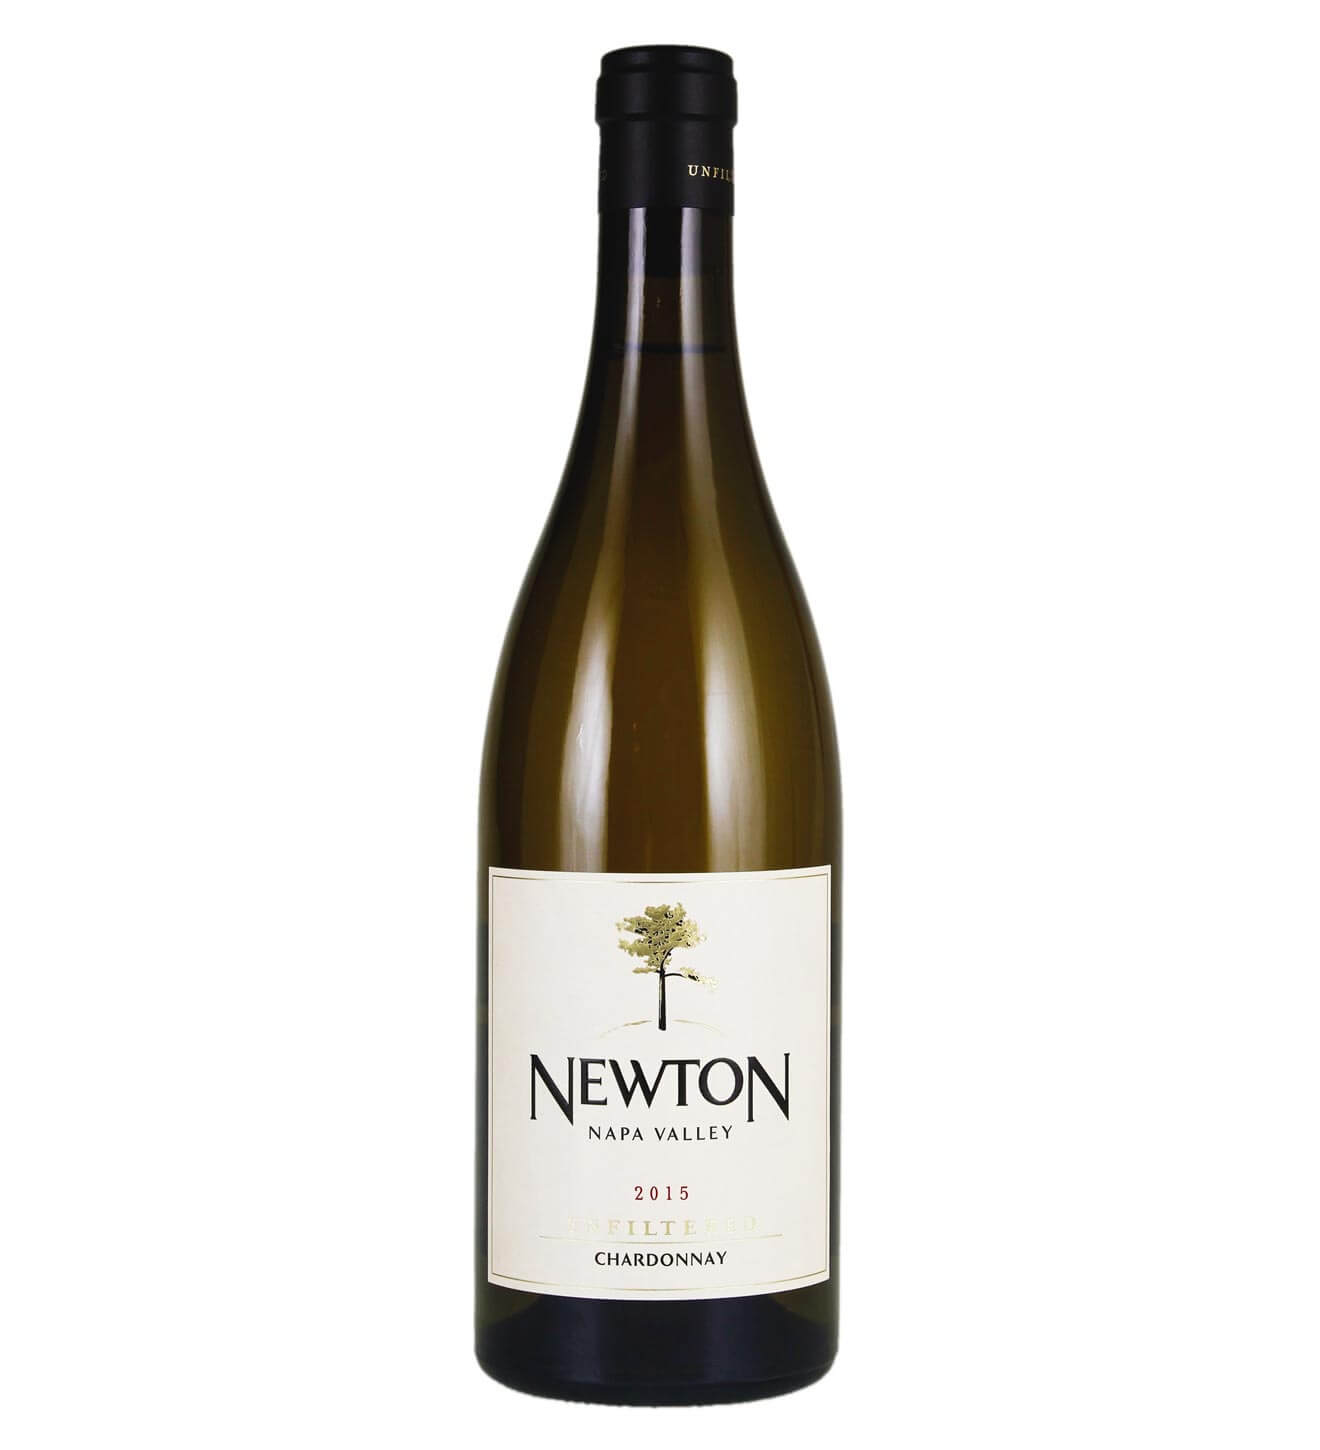 Newton Unfiltered Chardonnay 2015, bottle on white